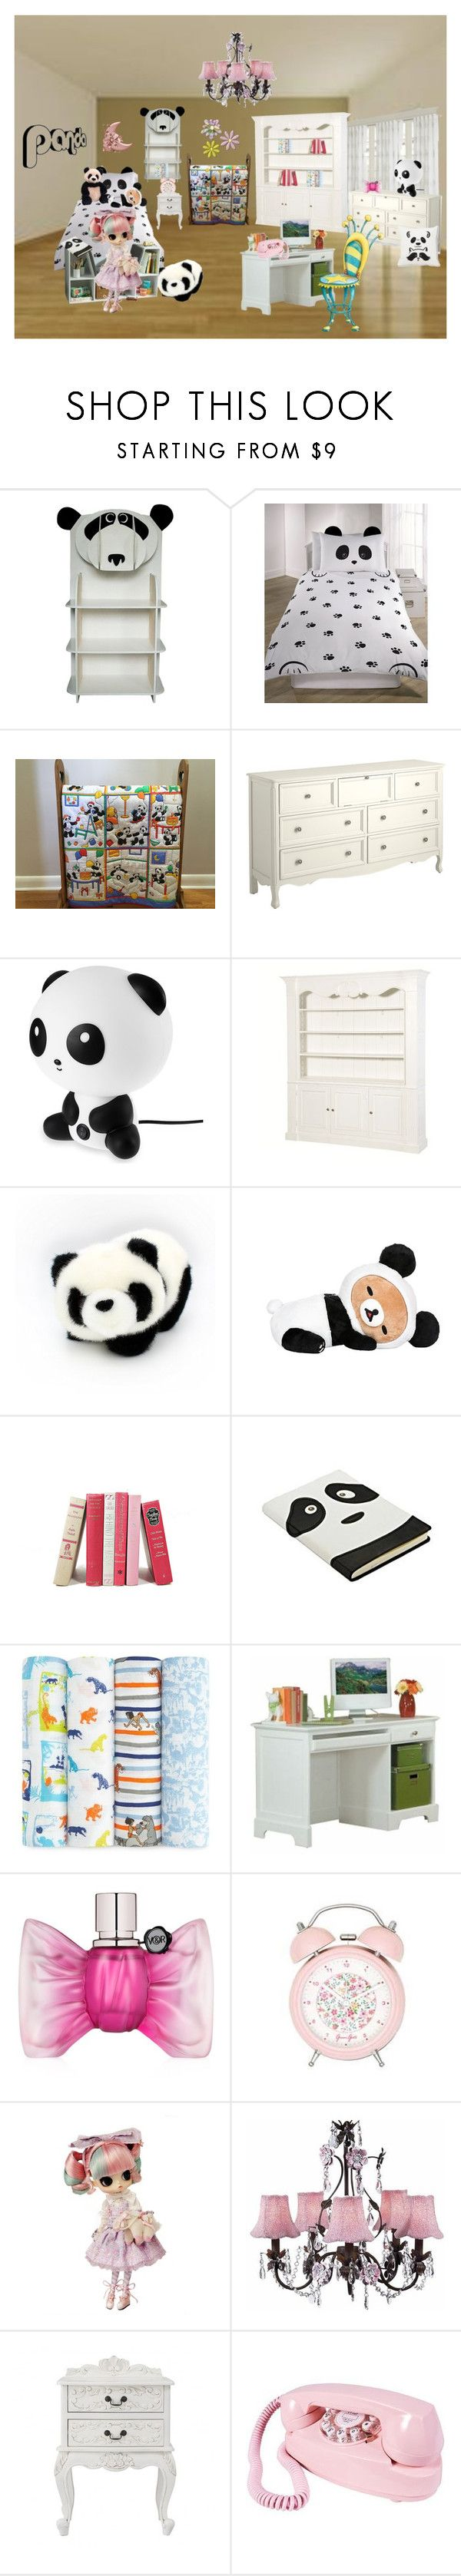 Hand Quilted Baby Quilt, Panda Baby Quilt, Unisex Baby Quilt by bamasbabes on Polyvore featuring Viktor & Rolf, Pier 1 Imports, Aden + Anais, Chandelier, Homelegance, New Look and Gund